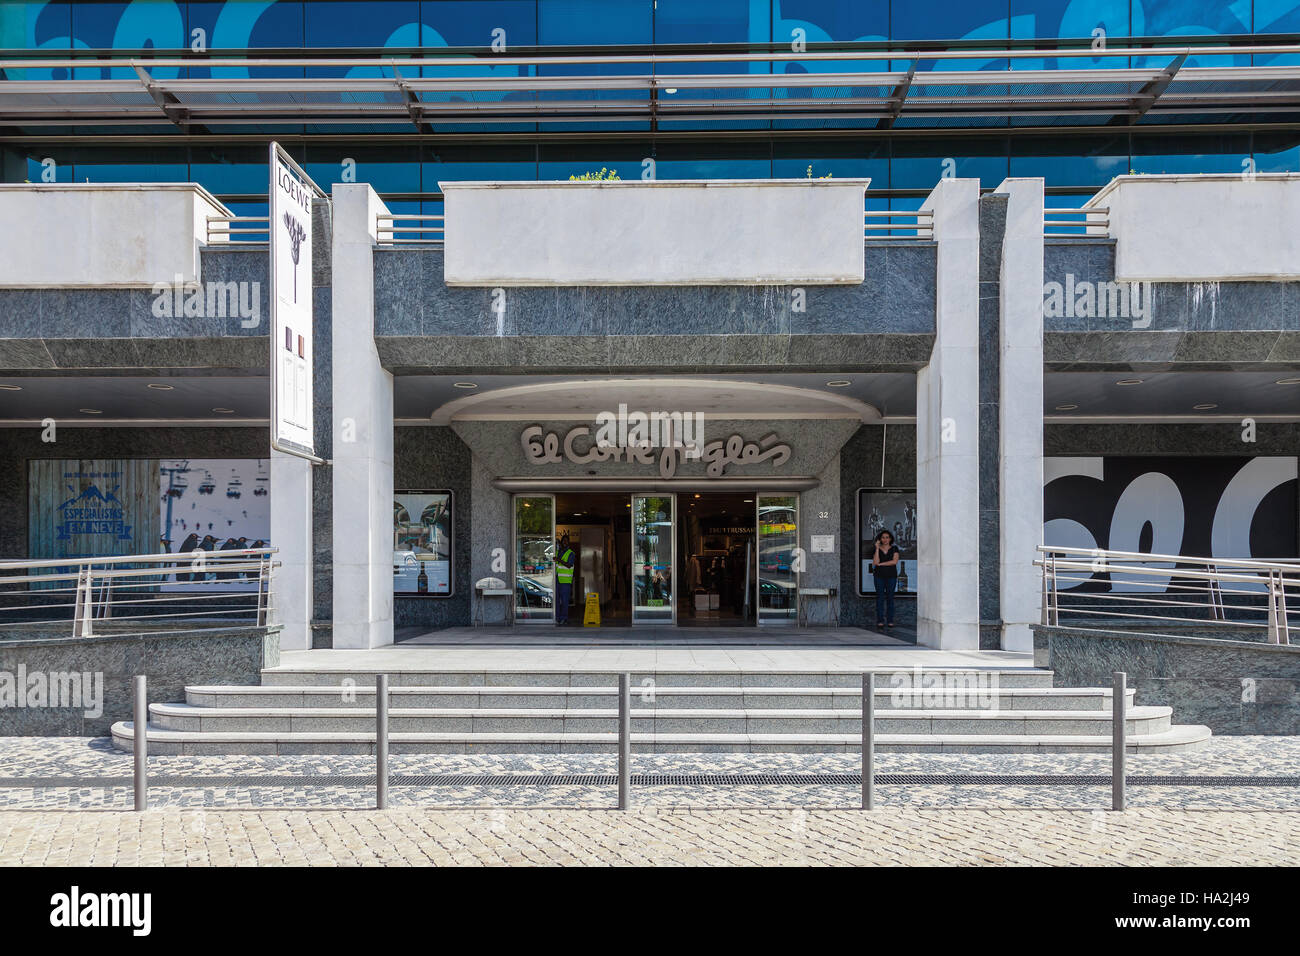 An entrance to the El Corte Ingles, a high end Shopping Mall of a global retail company, near the Eduardo VII Park. Stock Photo